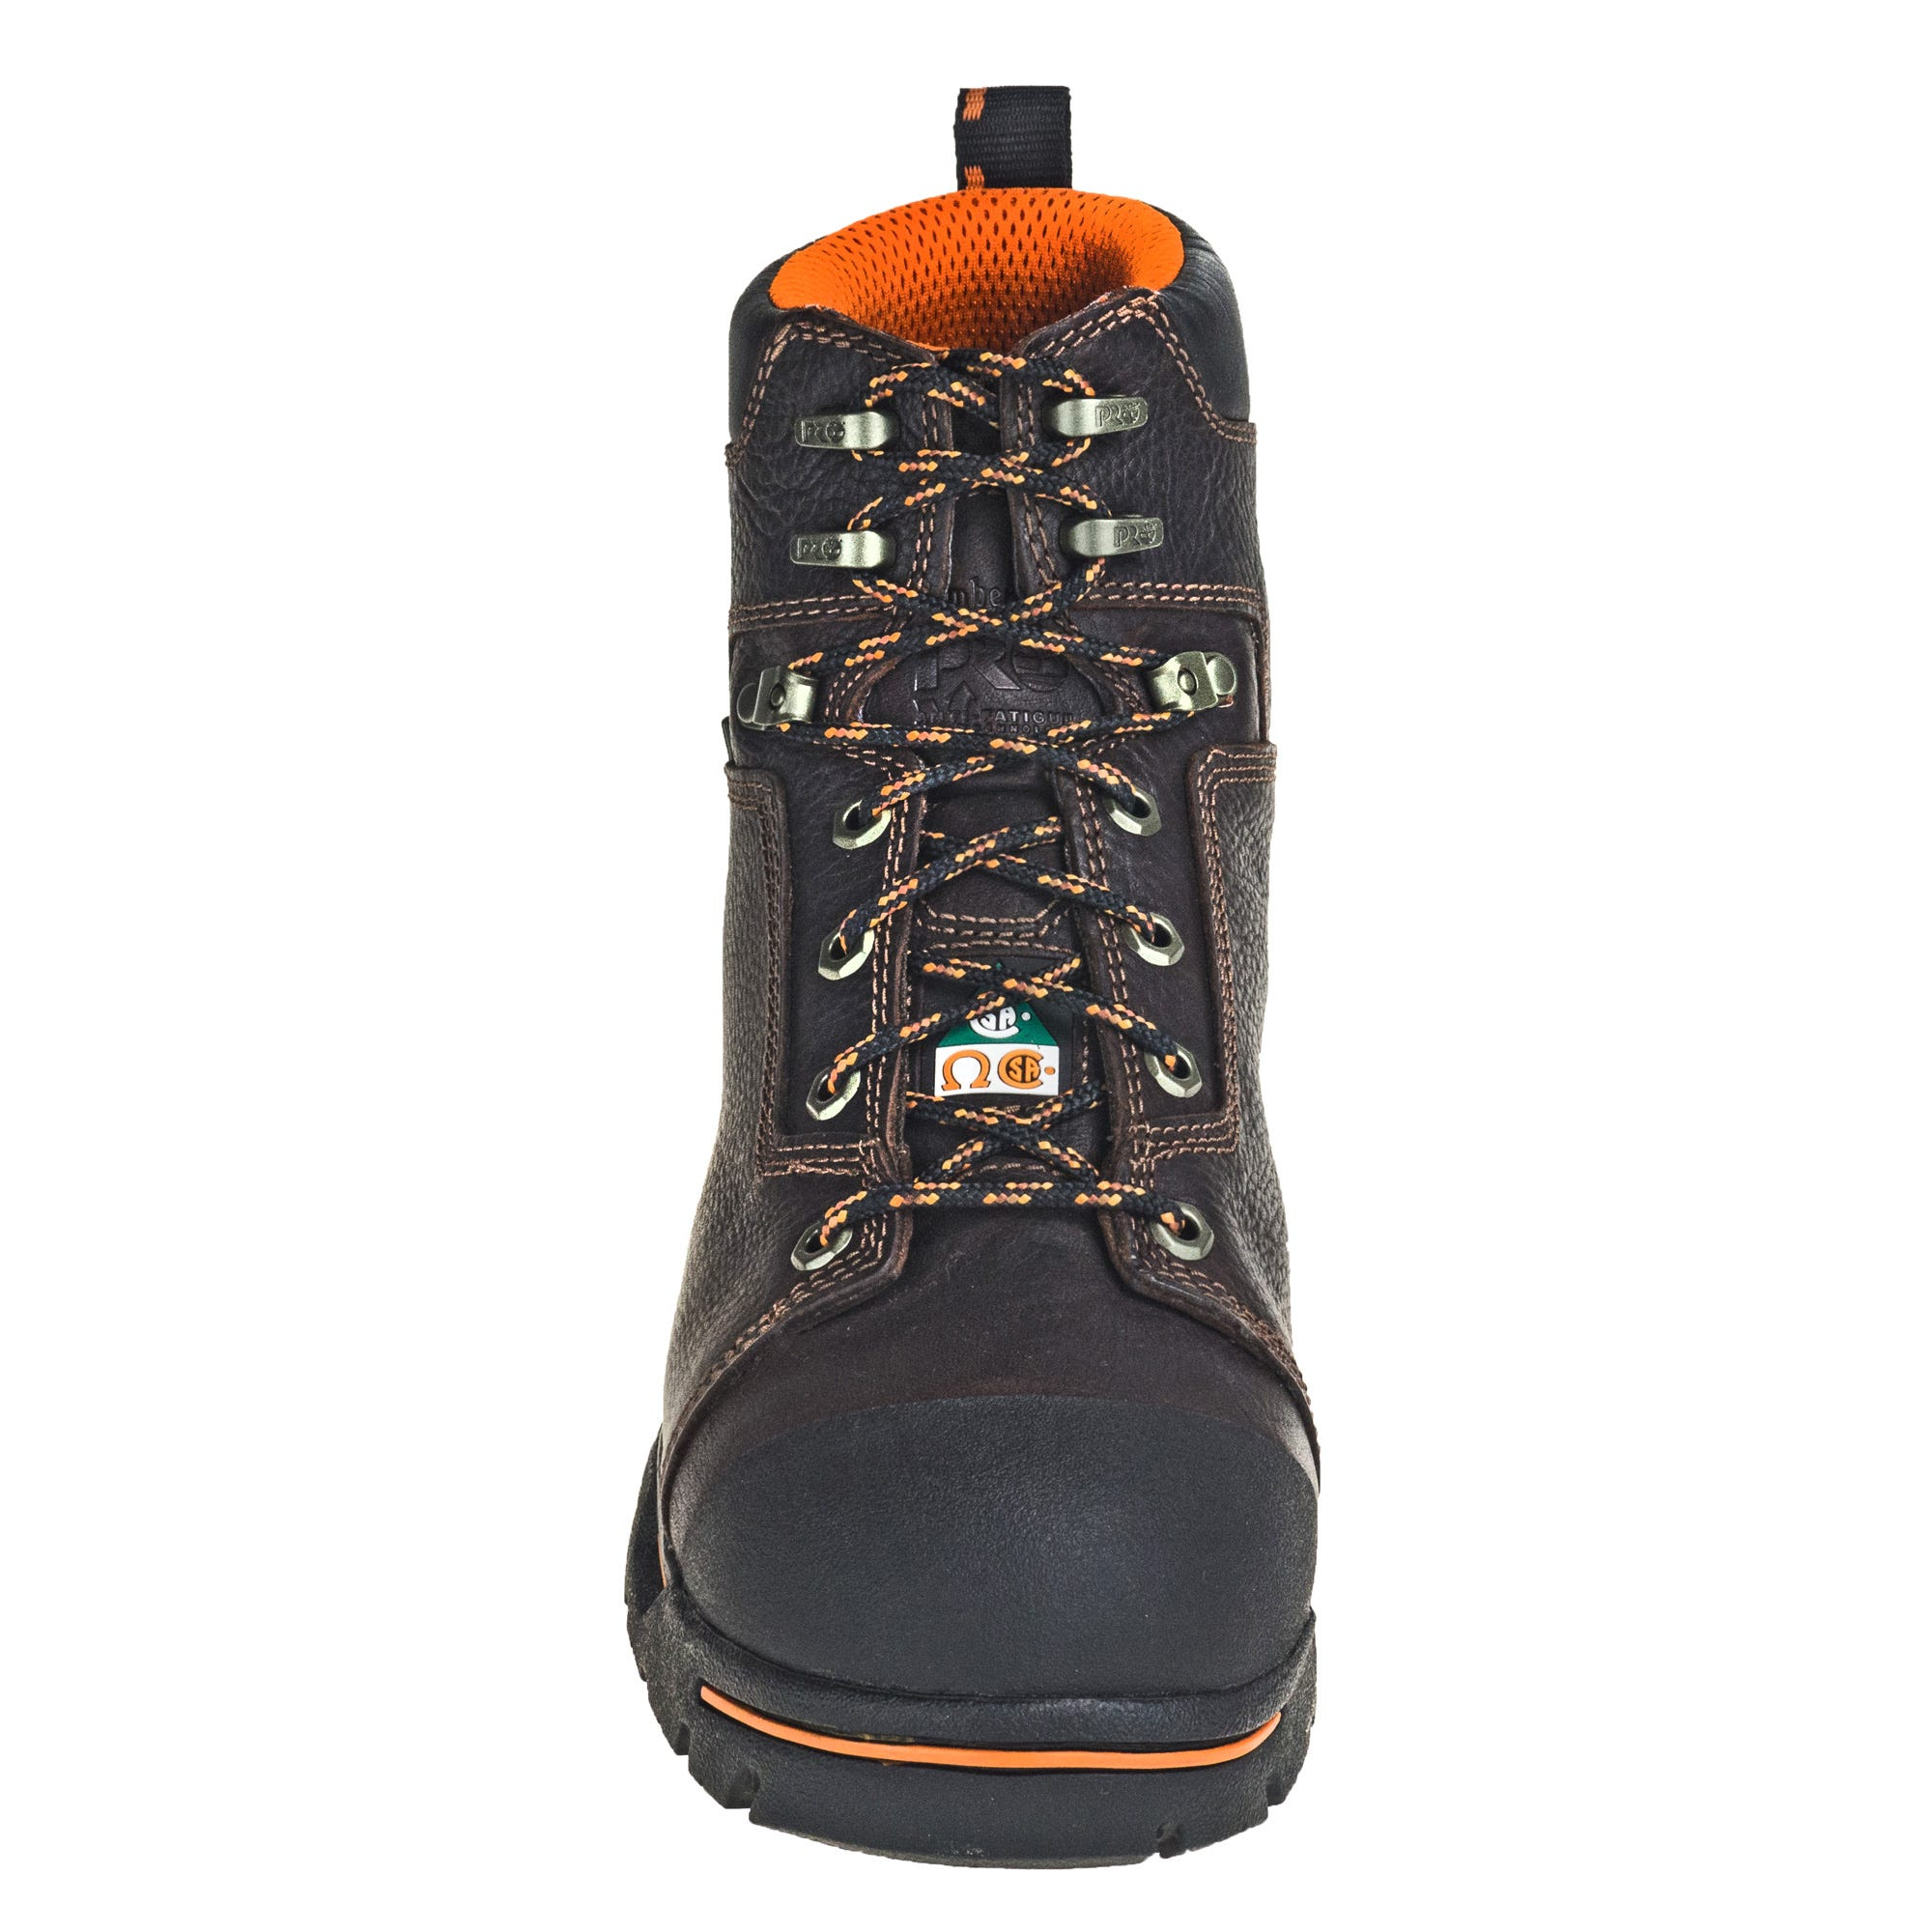 Composite Safety Toe Caps